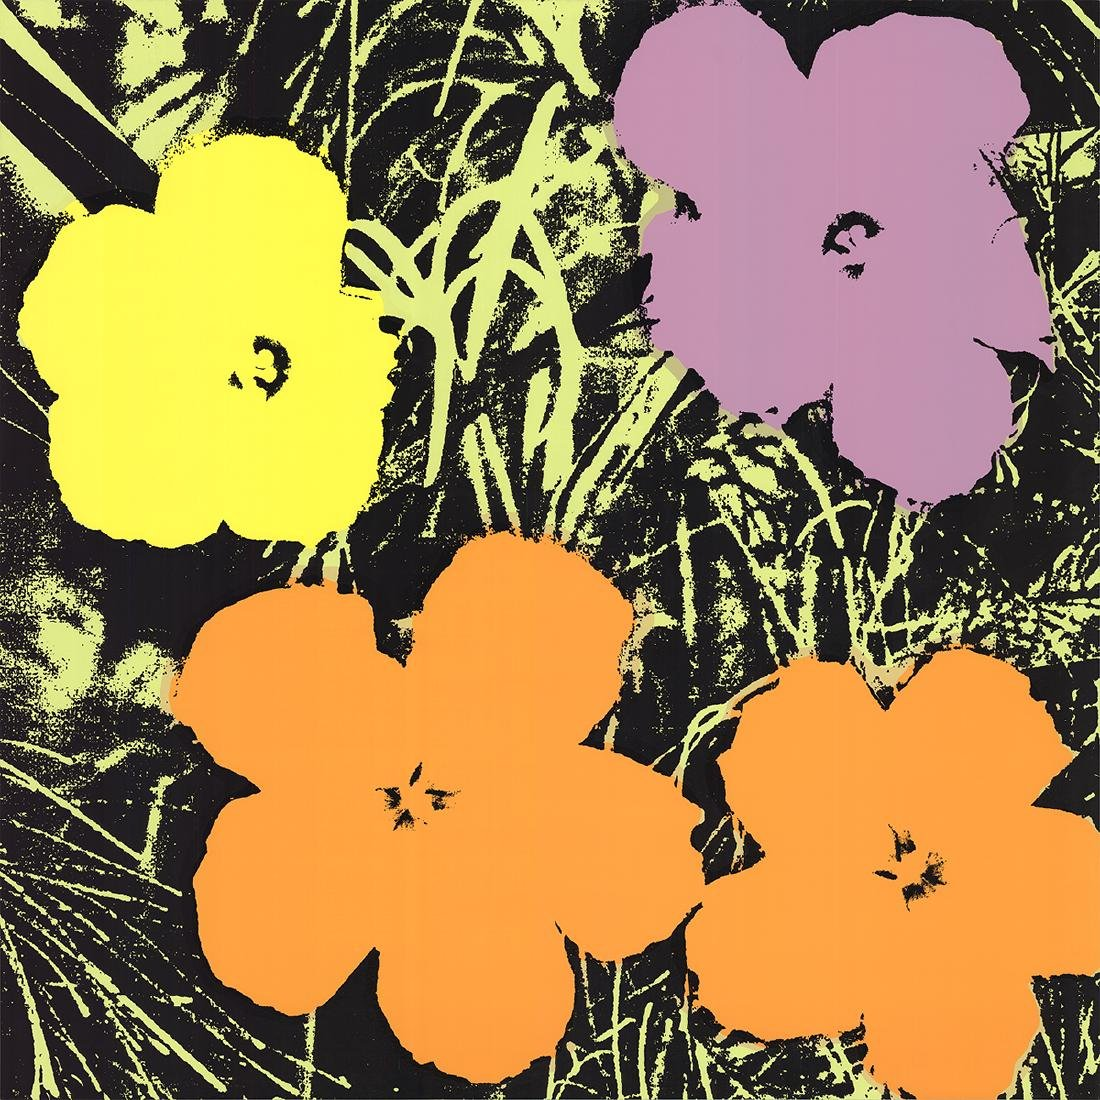 Andy Warhol - (after) Flowers